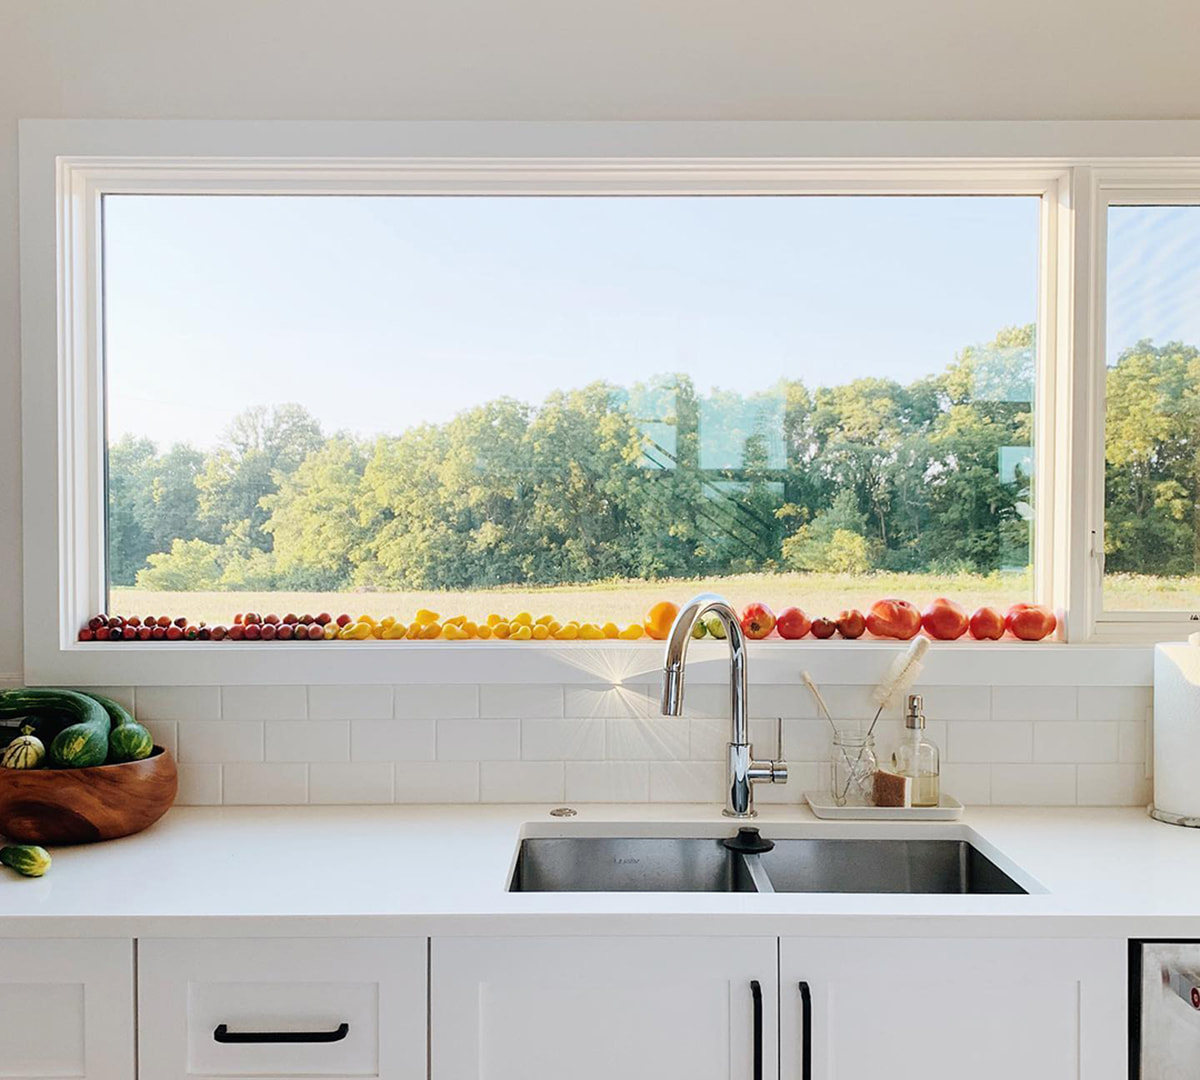 A white rectangular window over the kitchen sink acts as a shelf for resting an array of colorful produce.